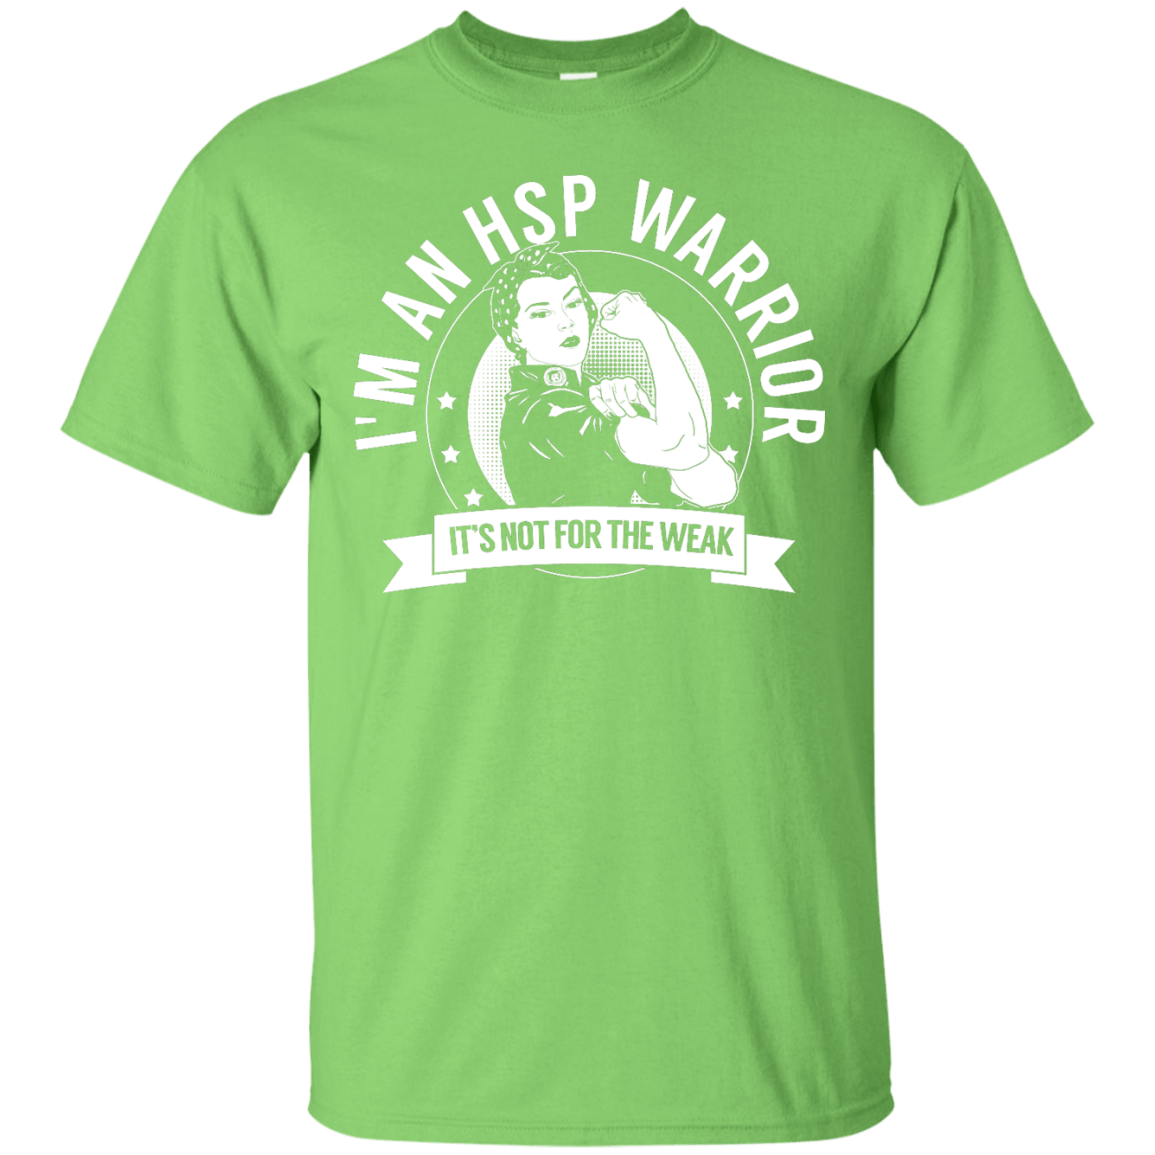 Hereditary Spastic Paraparesis - HSP Warrior Not For The Weak Unisex Shirt - The Unchargeables